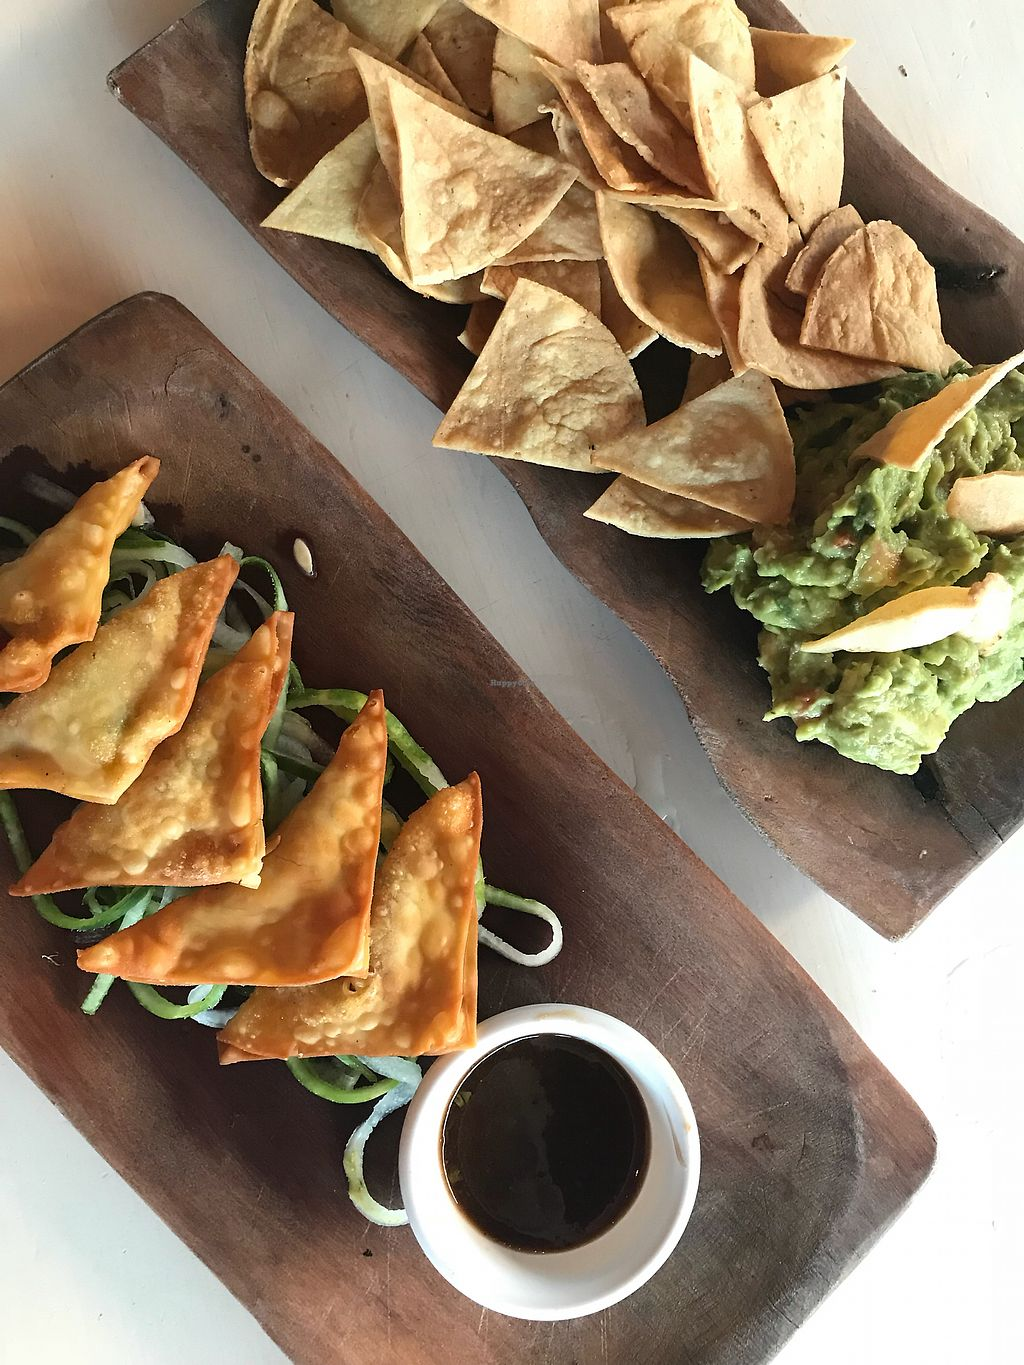 """Photo of La Hoja Verde  by <a href=""""/members/profile/KatjaValentinaKramp"""">KatjaValentinaKramp</a> <br/>Homemade guacamole and empanadas  <br/> March 3, 2018  - <a href='/contact/abuse/image/36309/365964'>Report</a>"""